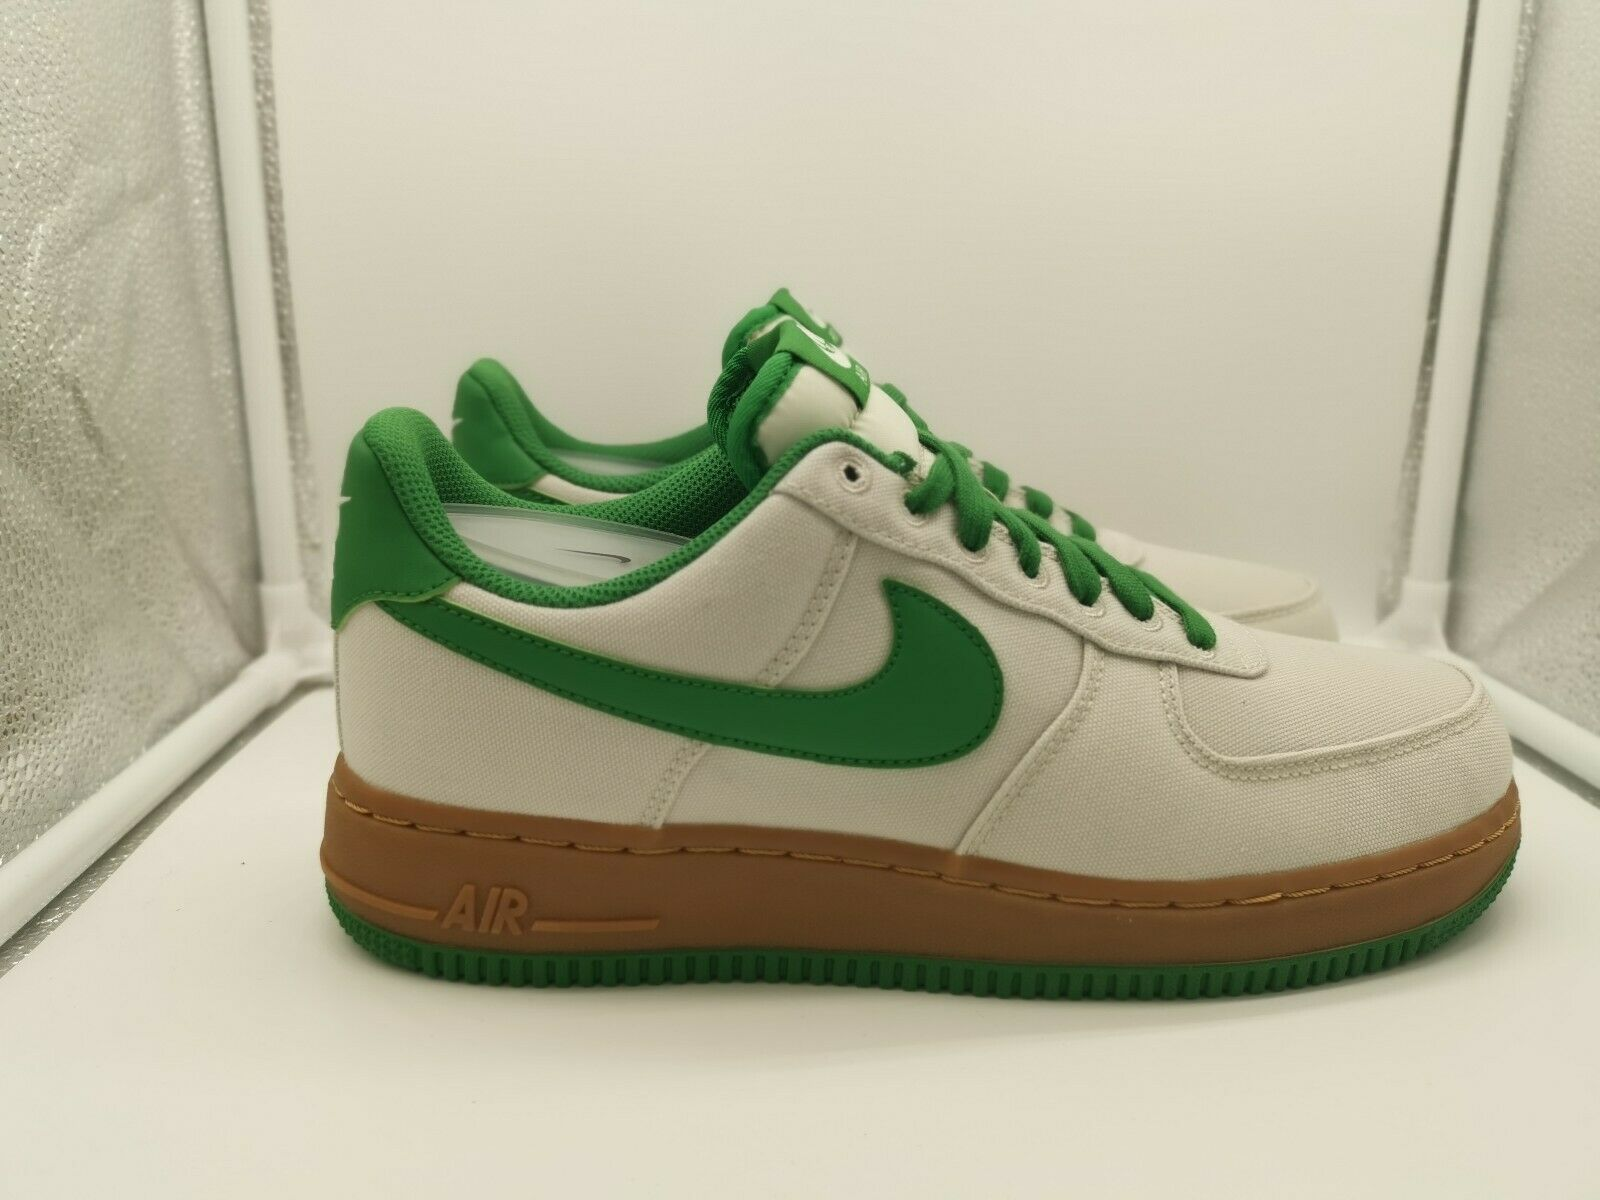 Nike Air Force 1 UK 7.5 Light Bone Aloe Grün Grün AJ7282-003